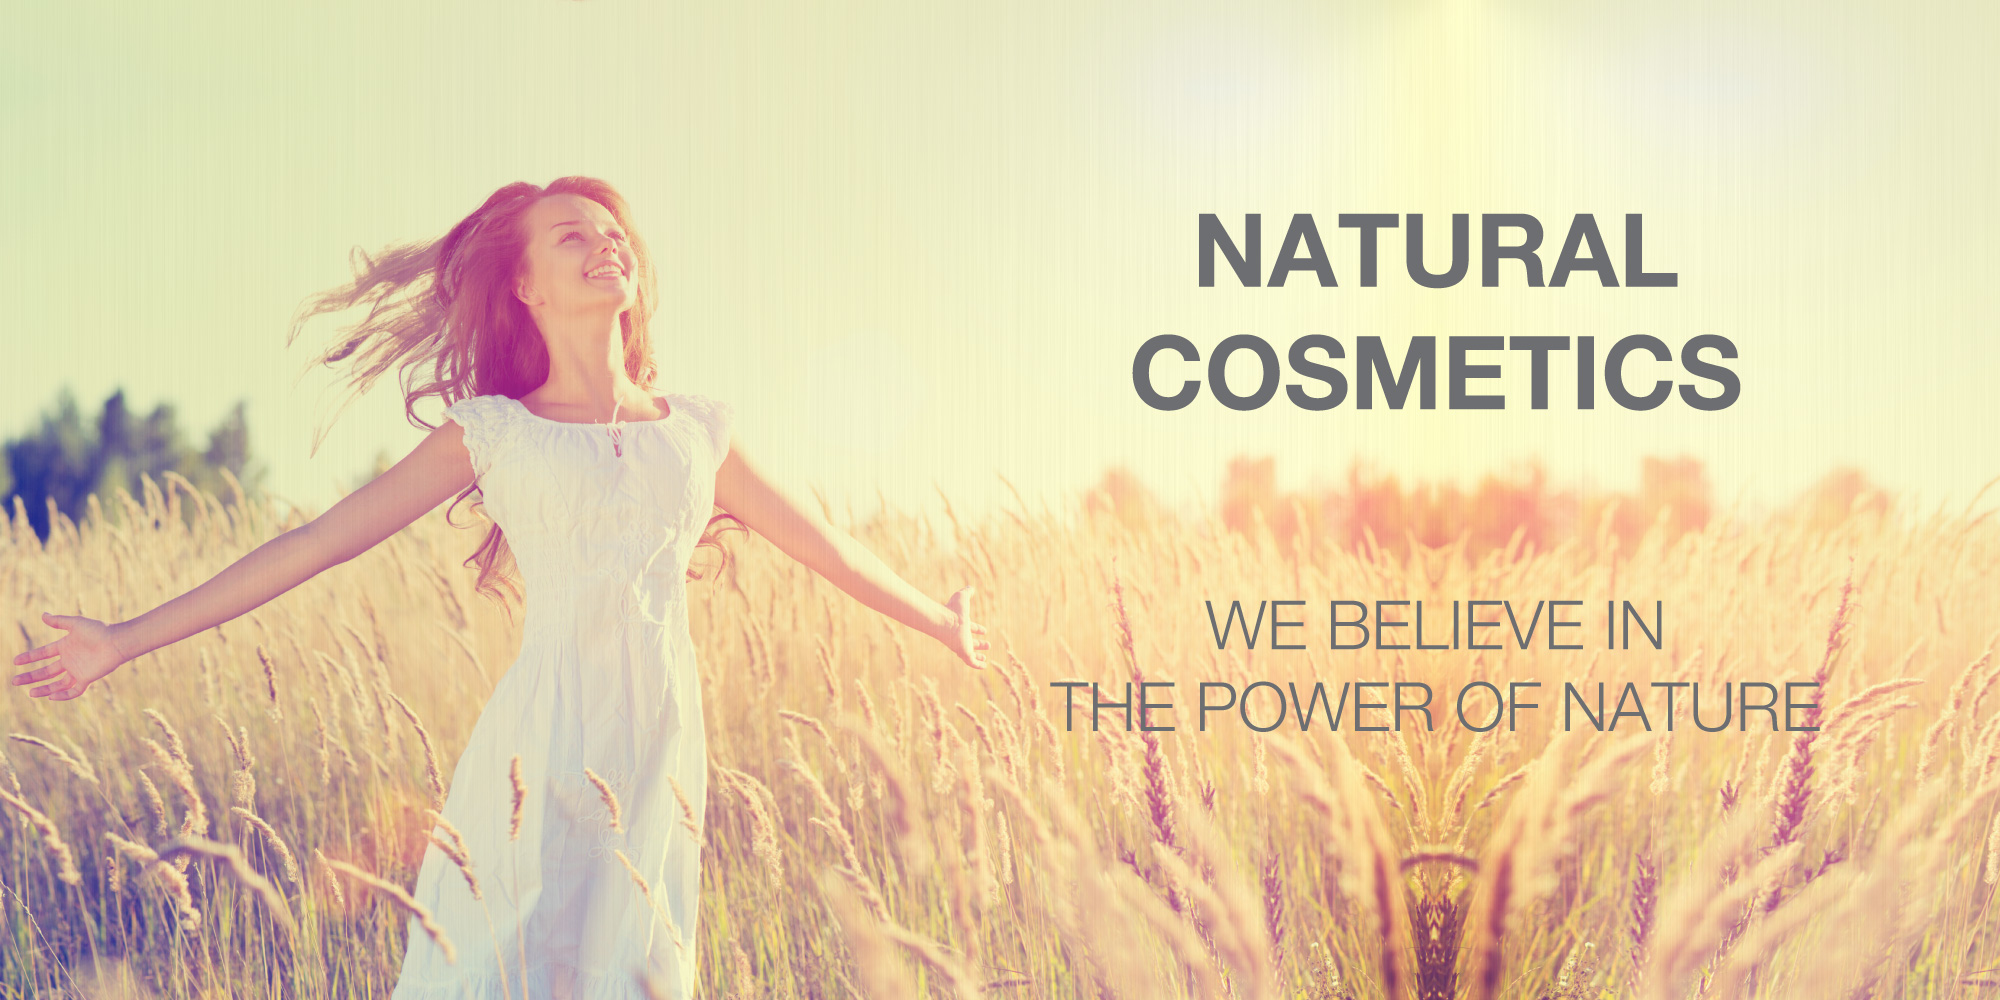 Natural cosmetics - We believe in the power of nature (organic ingredients)